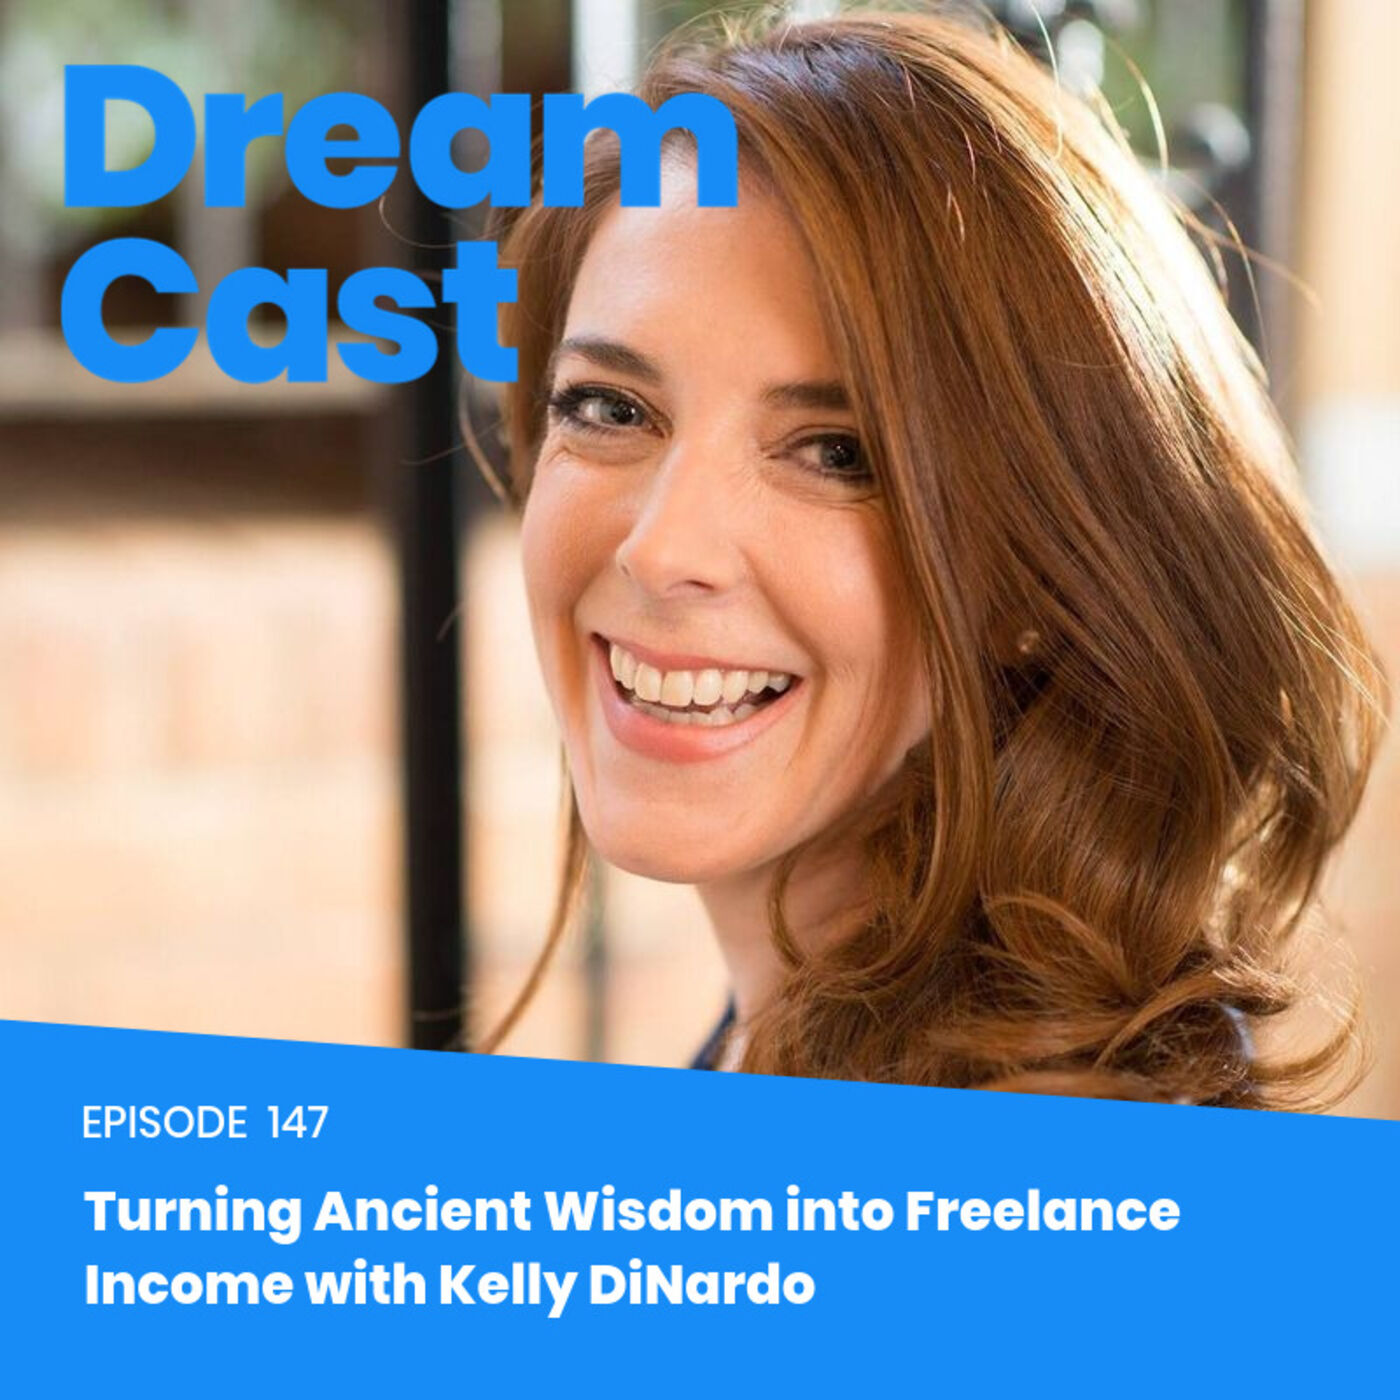 Episode 147 – Turning Ancient Wisdom Into Freelance Income with Kelly DiNardo